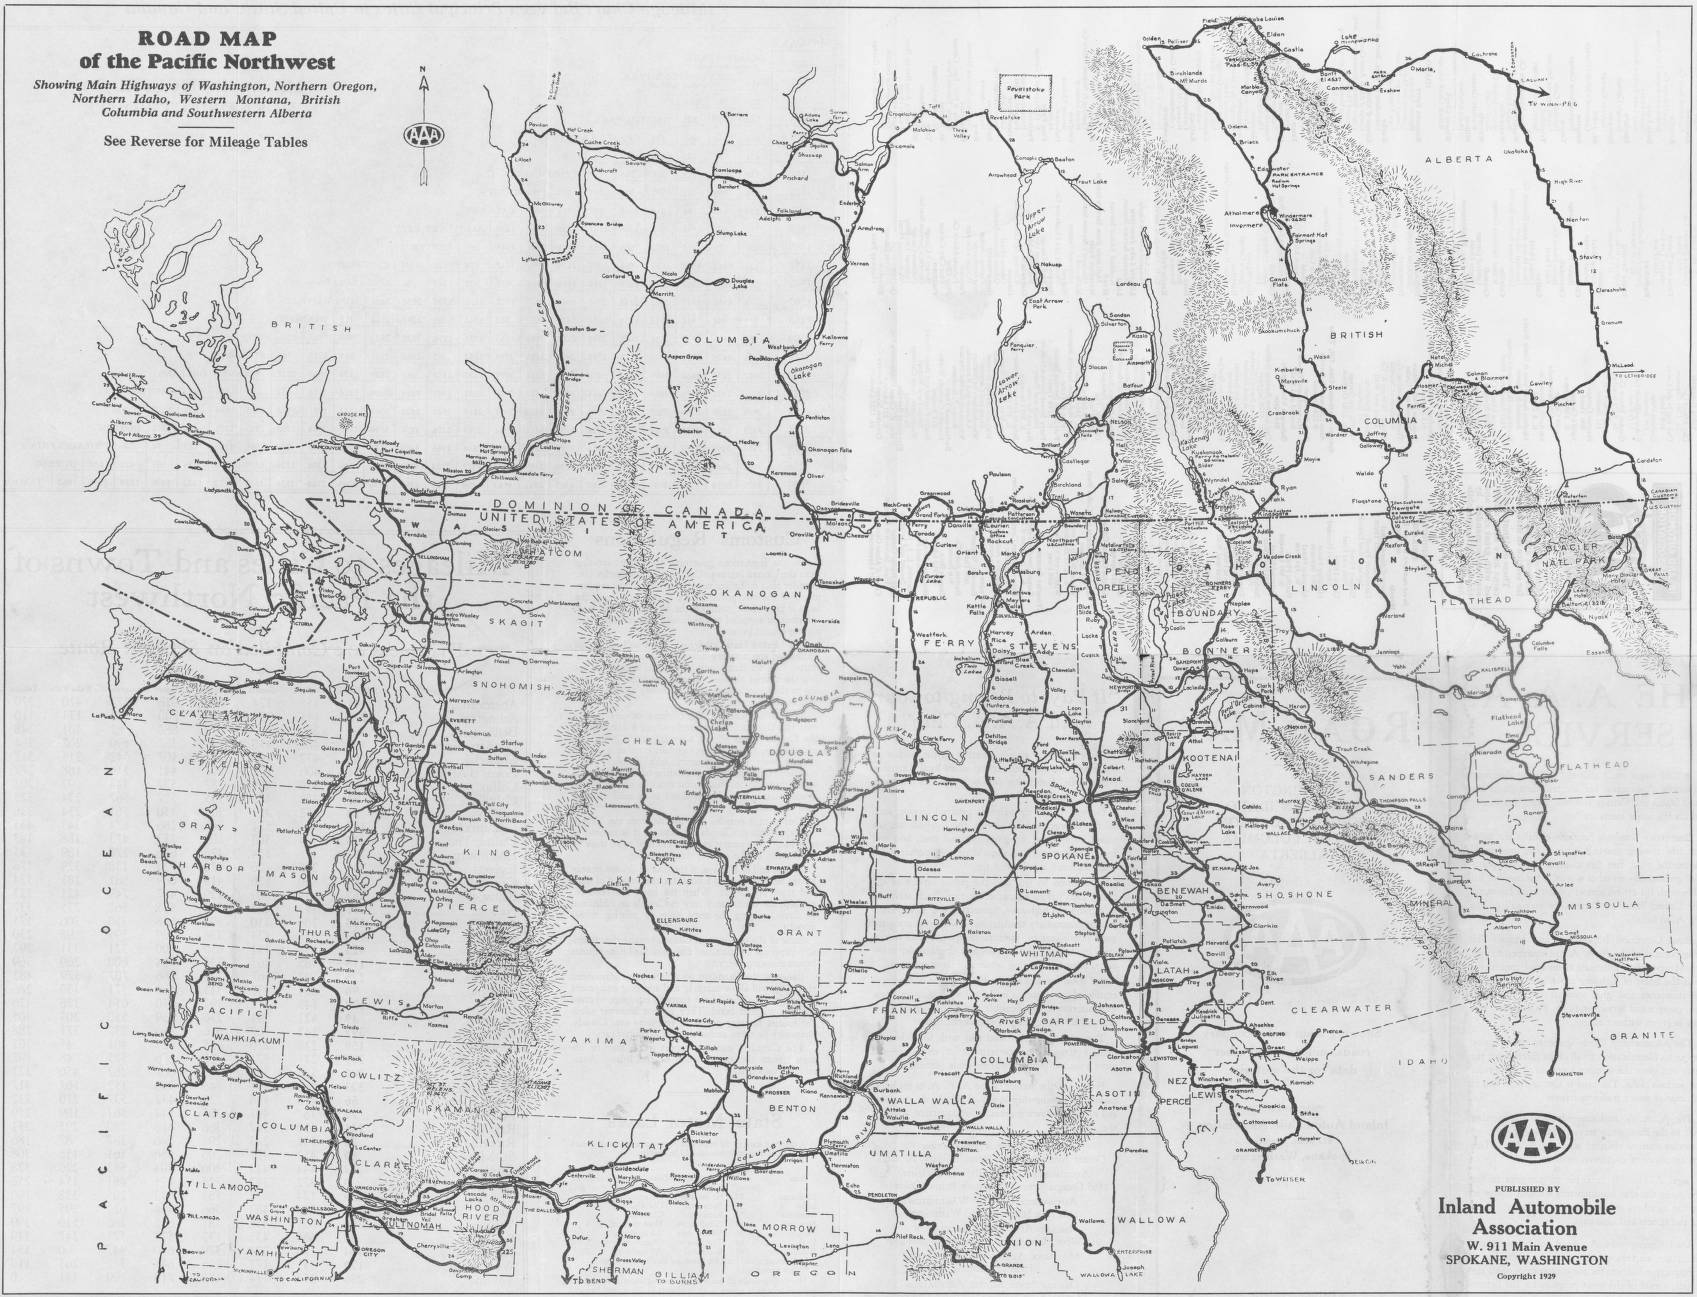 road map of pacific northwest Road Map Of The Pacific Northwest Showing The Main Highways Of road map of pacific northwest